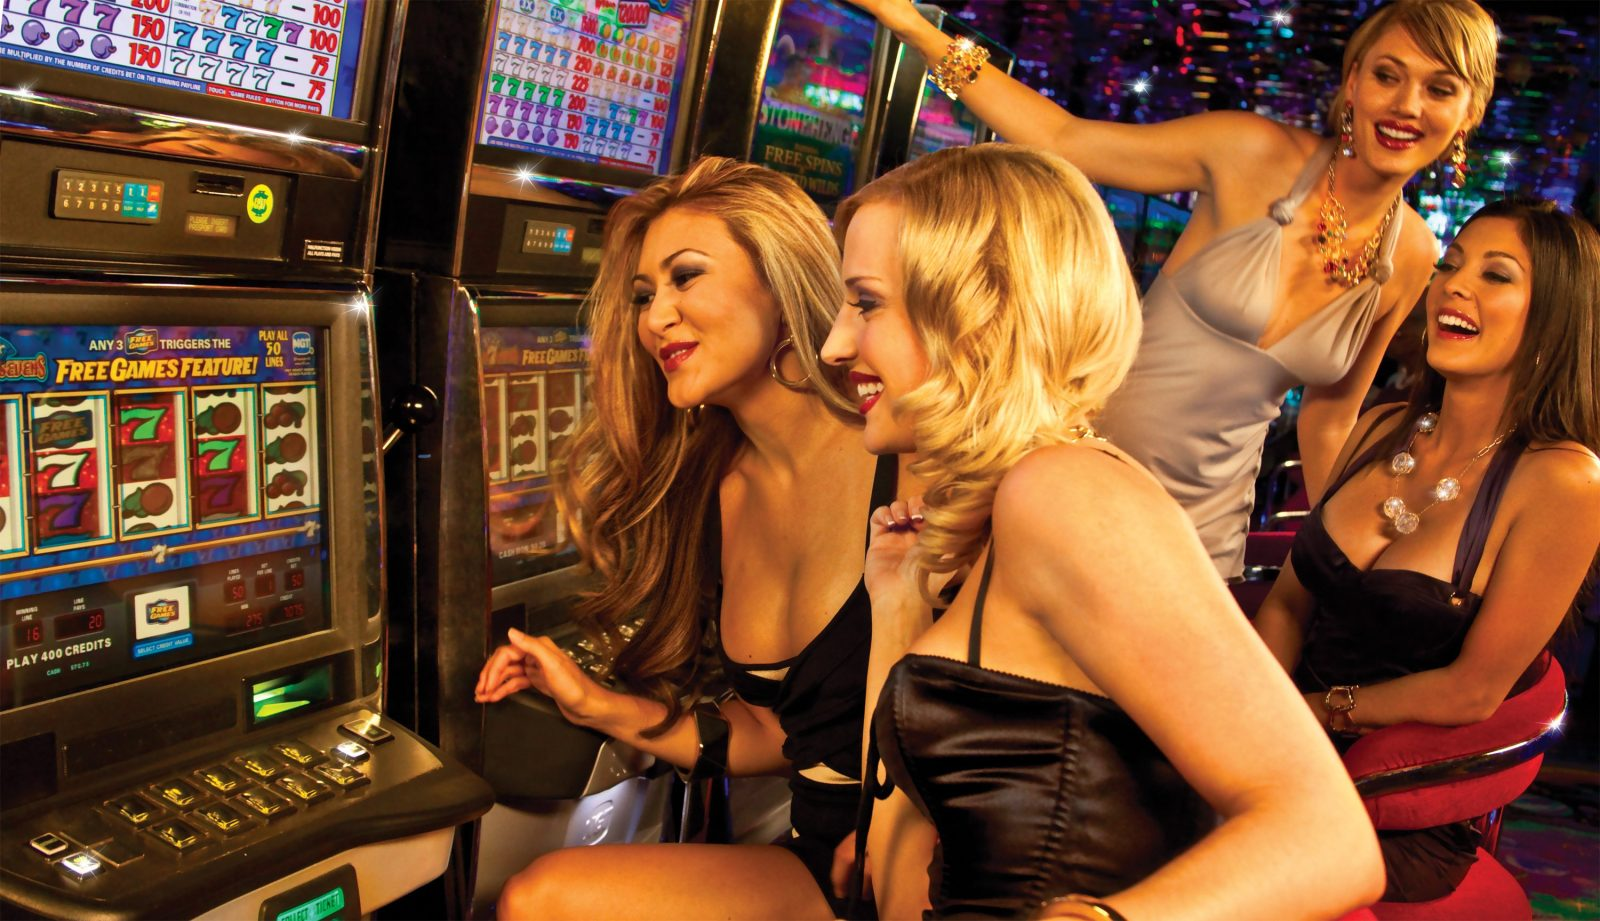 free slot play online gambling casino games